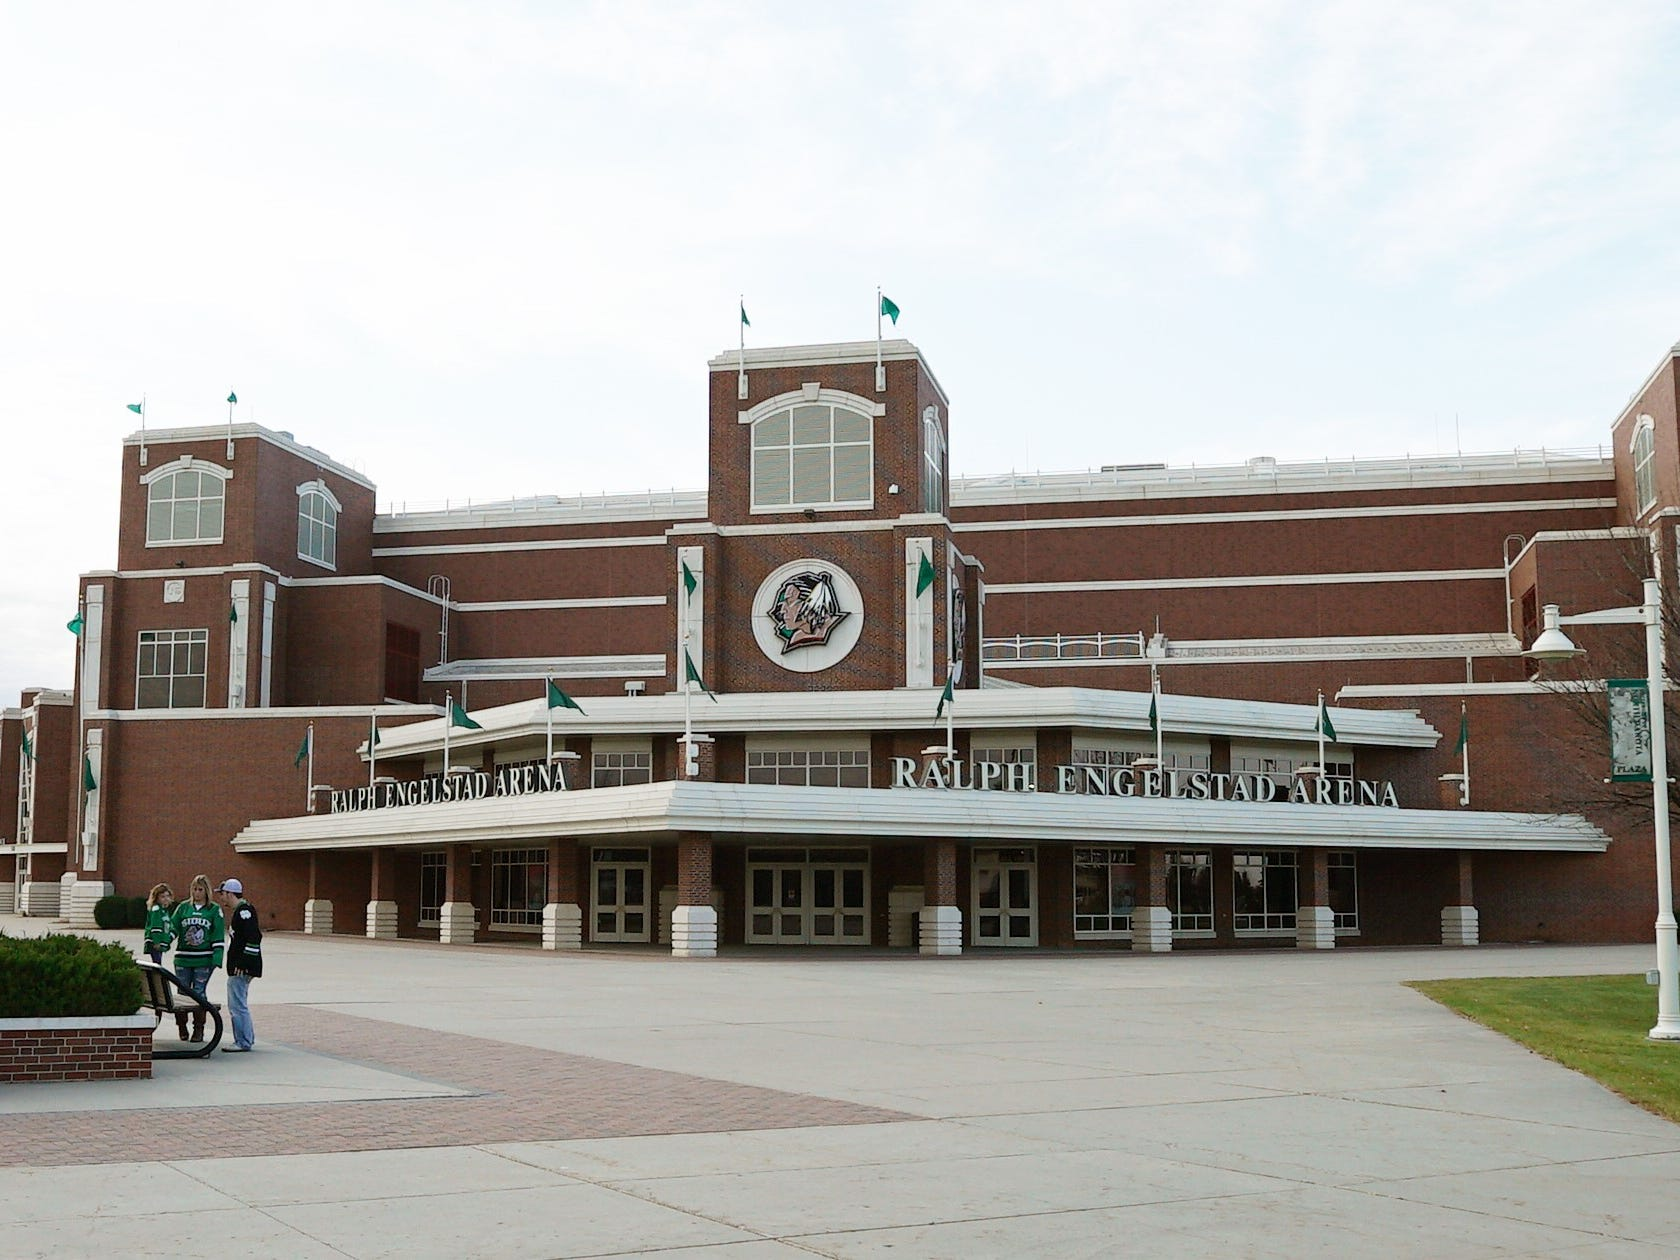 North Dakota: The Ralph Engelstad Arena on the University of North Dakota campus is home to the UND hockey team.